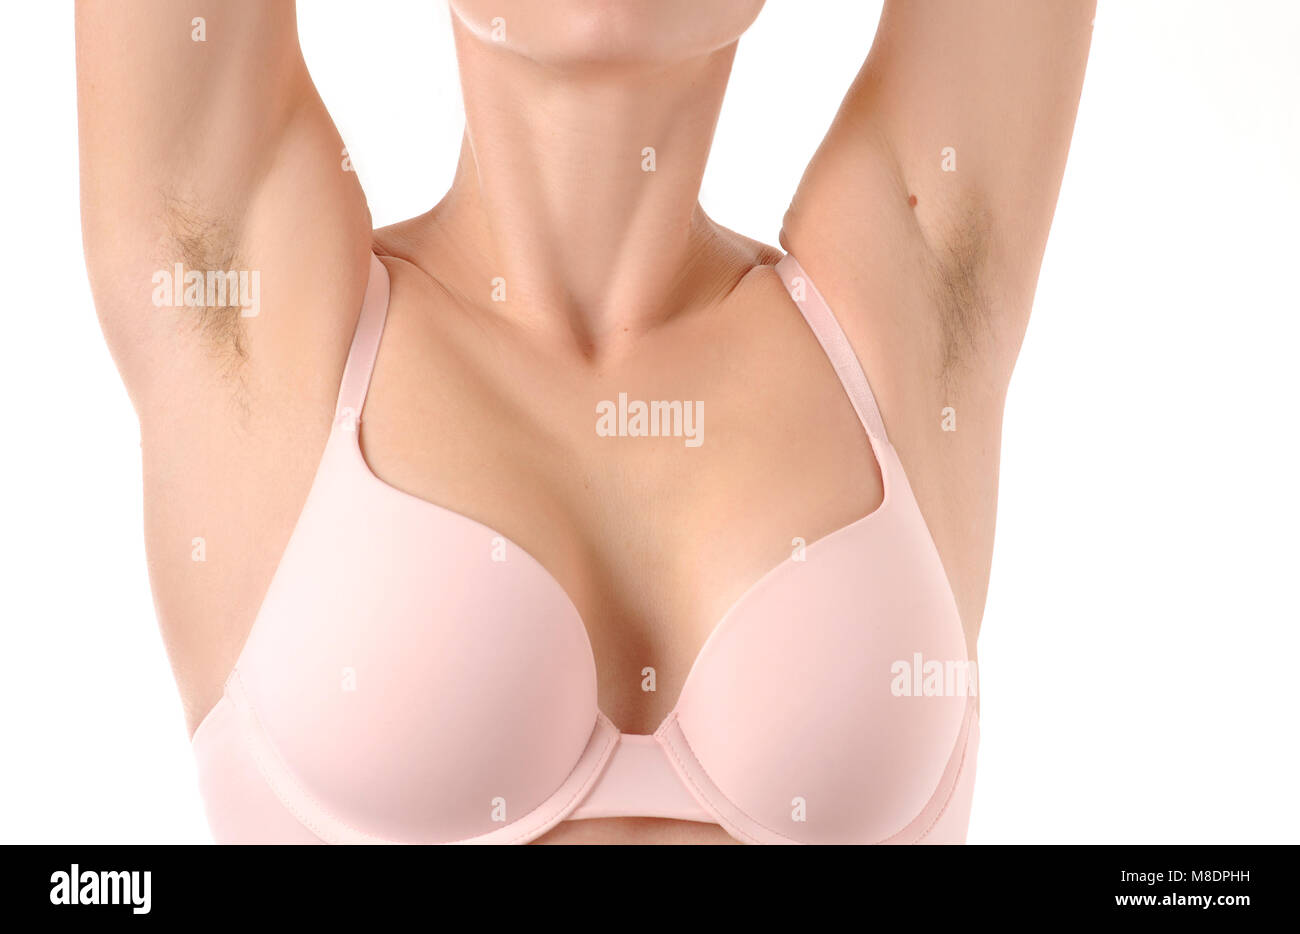 Female unshaved armpits. Woman with hairy armpits. Girl with long hair underarm - Stock Image